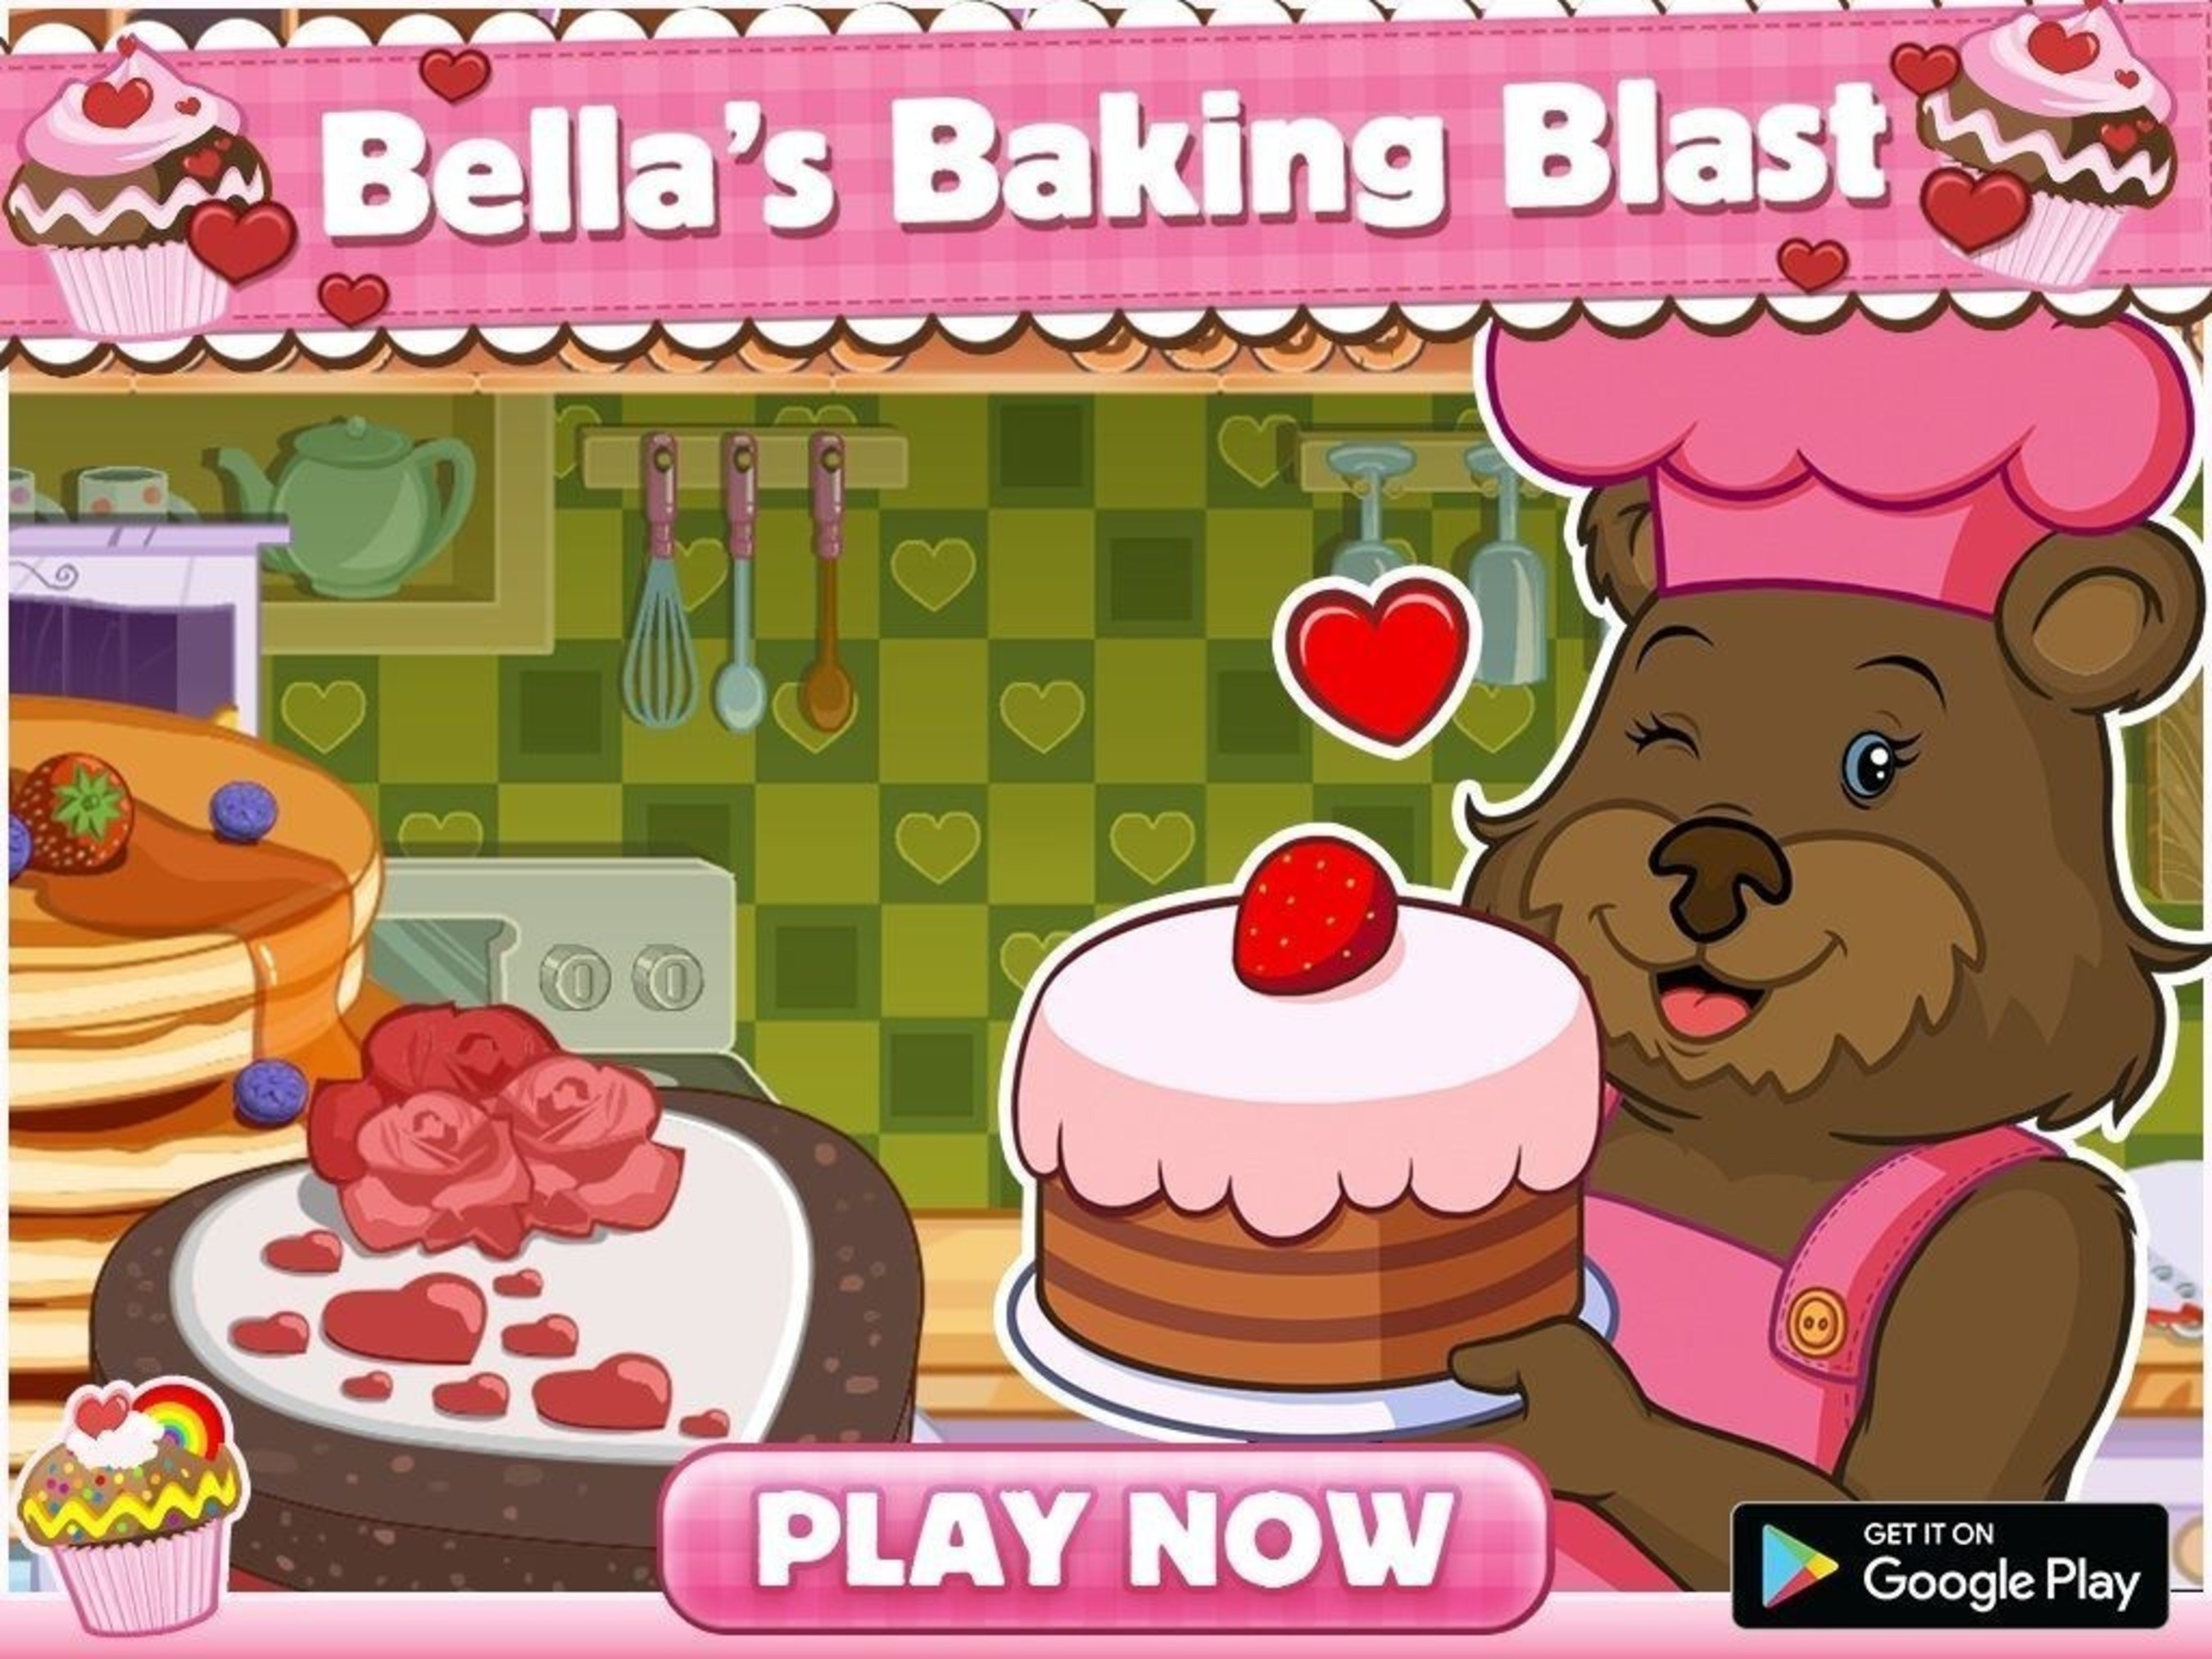 'Bella's Baking Blast' App for Children Delivers Virtual Baking Fun